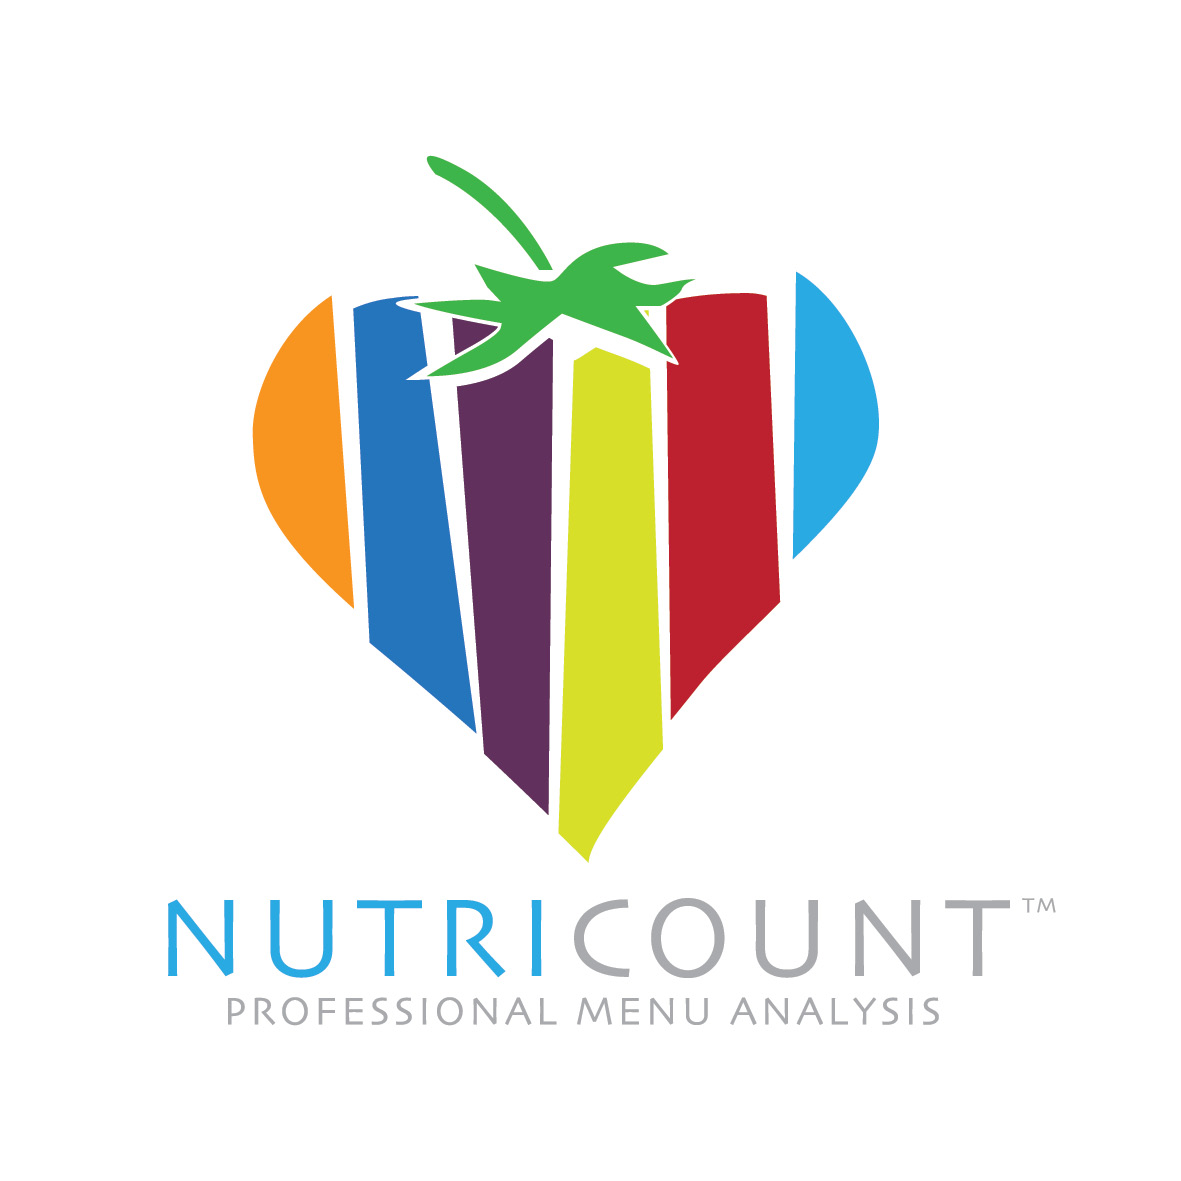 NutriCount New Logo, Name & tagline (Oct 2012)_PDF